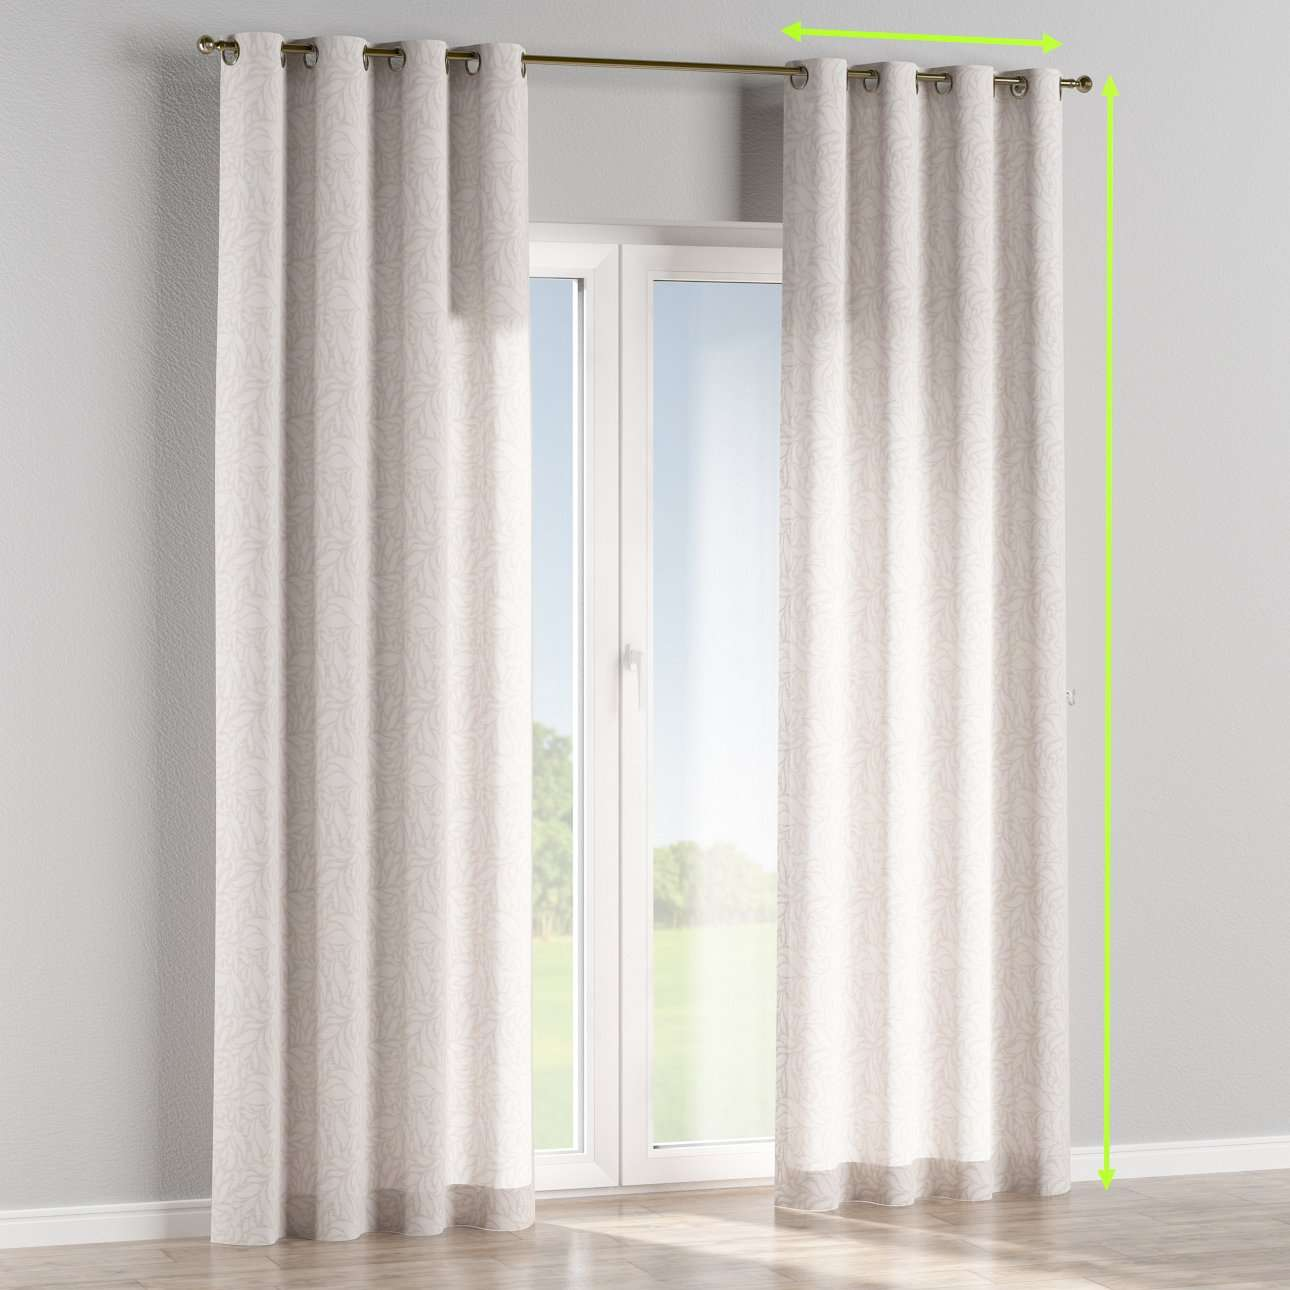 Eyelet lined curtains in collection Venice, fabric: 140-50